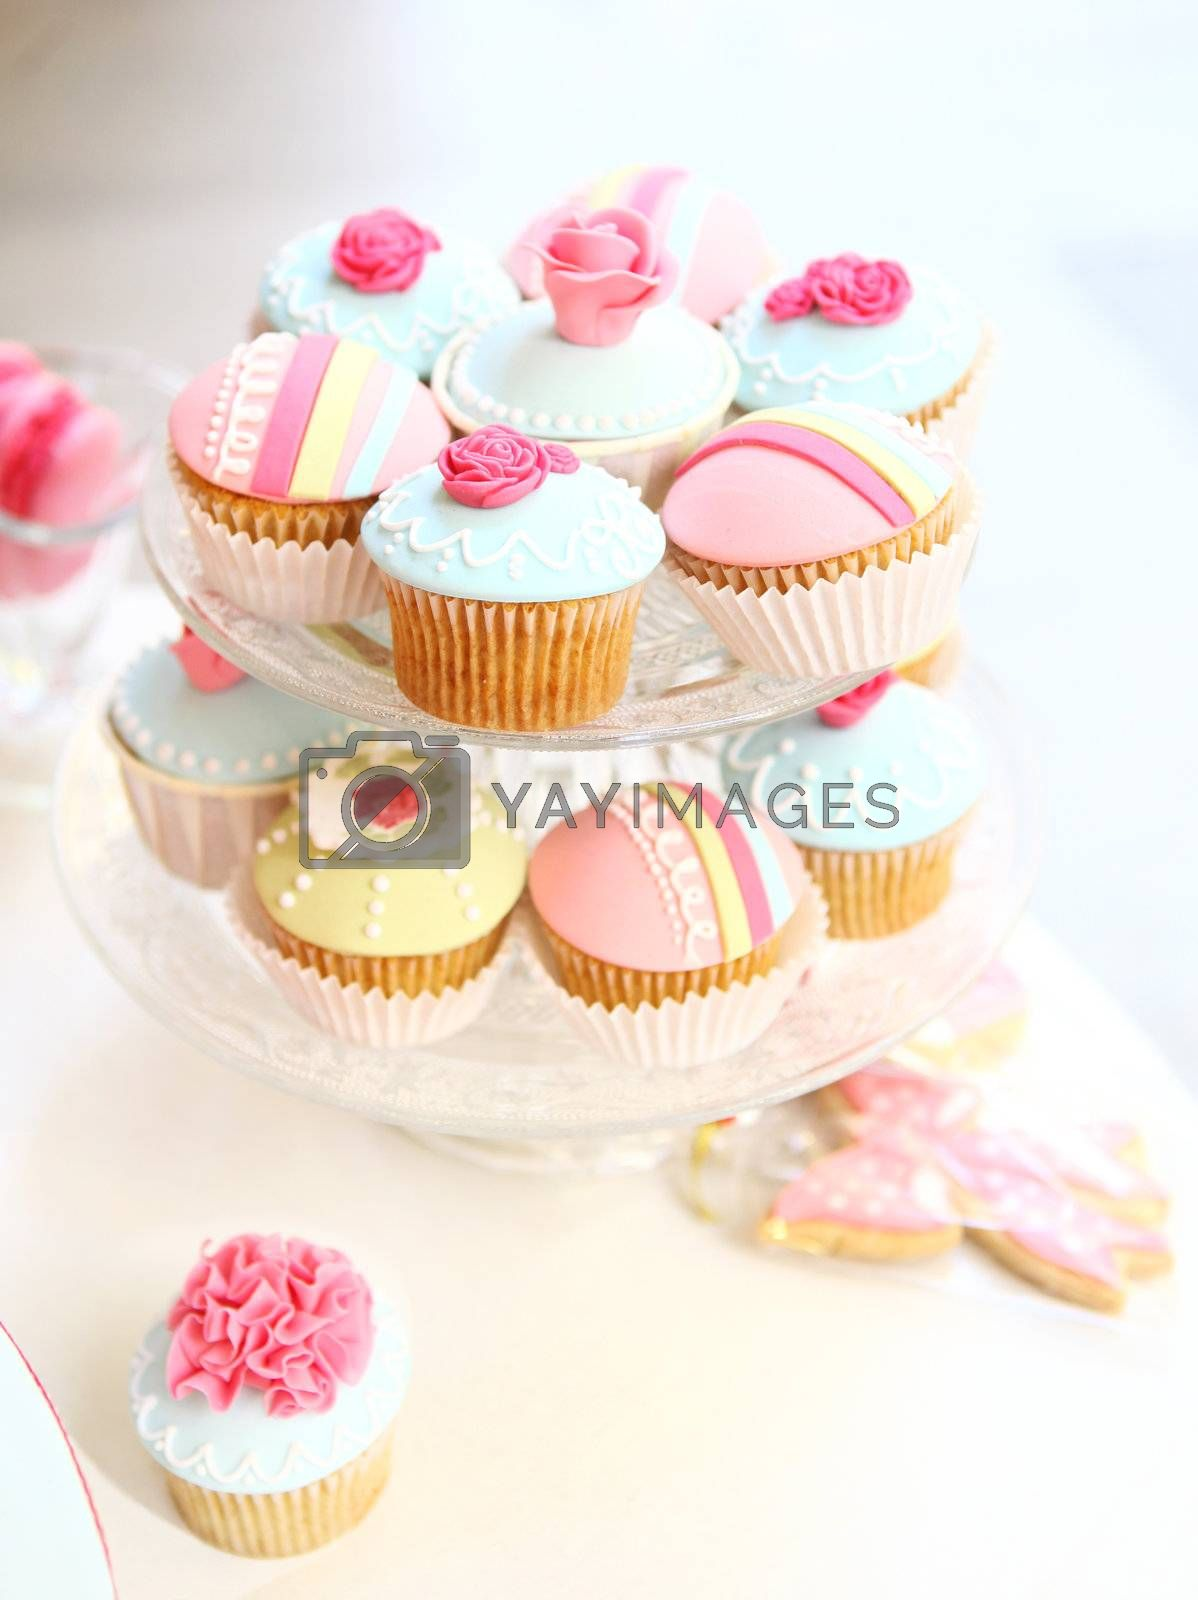 Cupcake tray with soft light on table        Cupcakes party